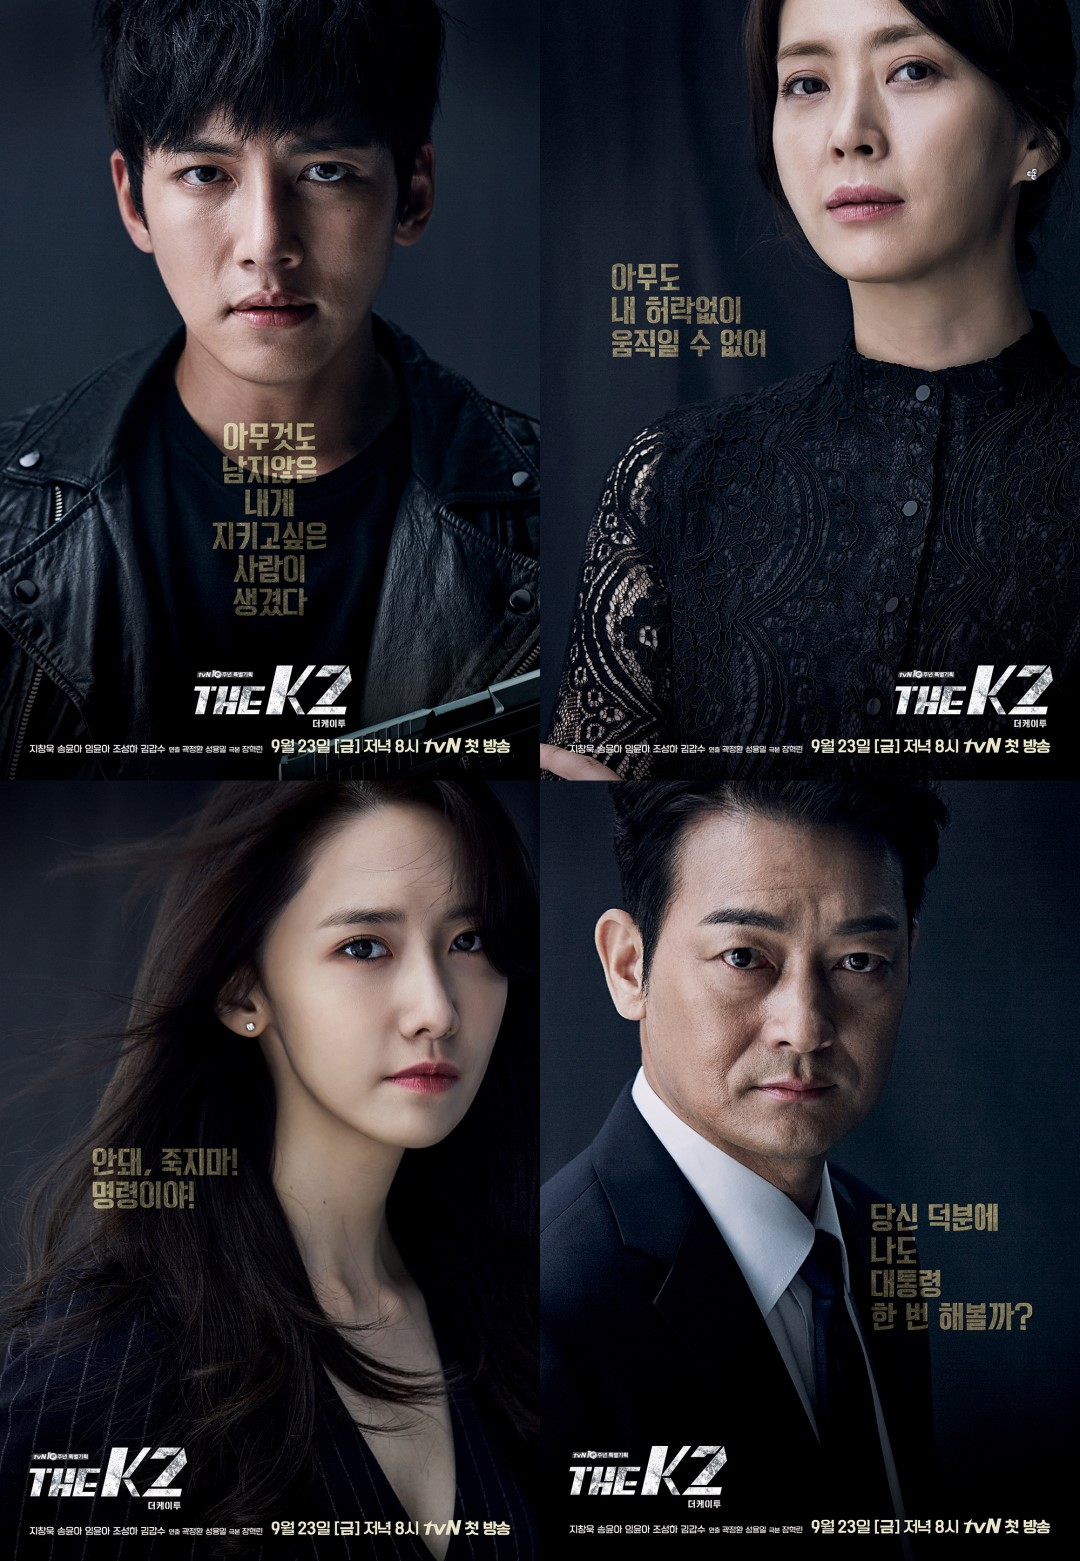 The K2 Cast